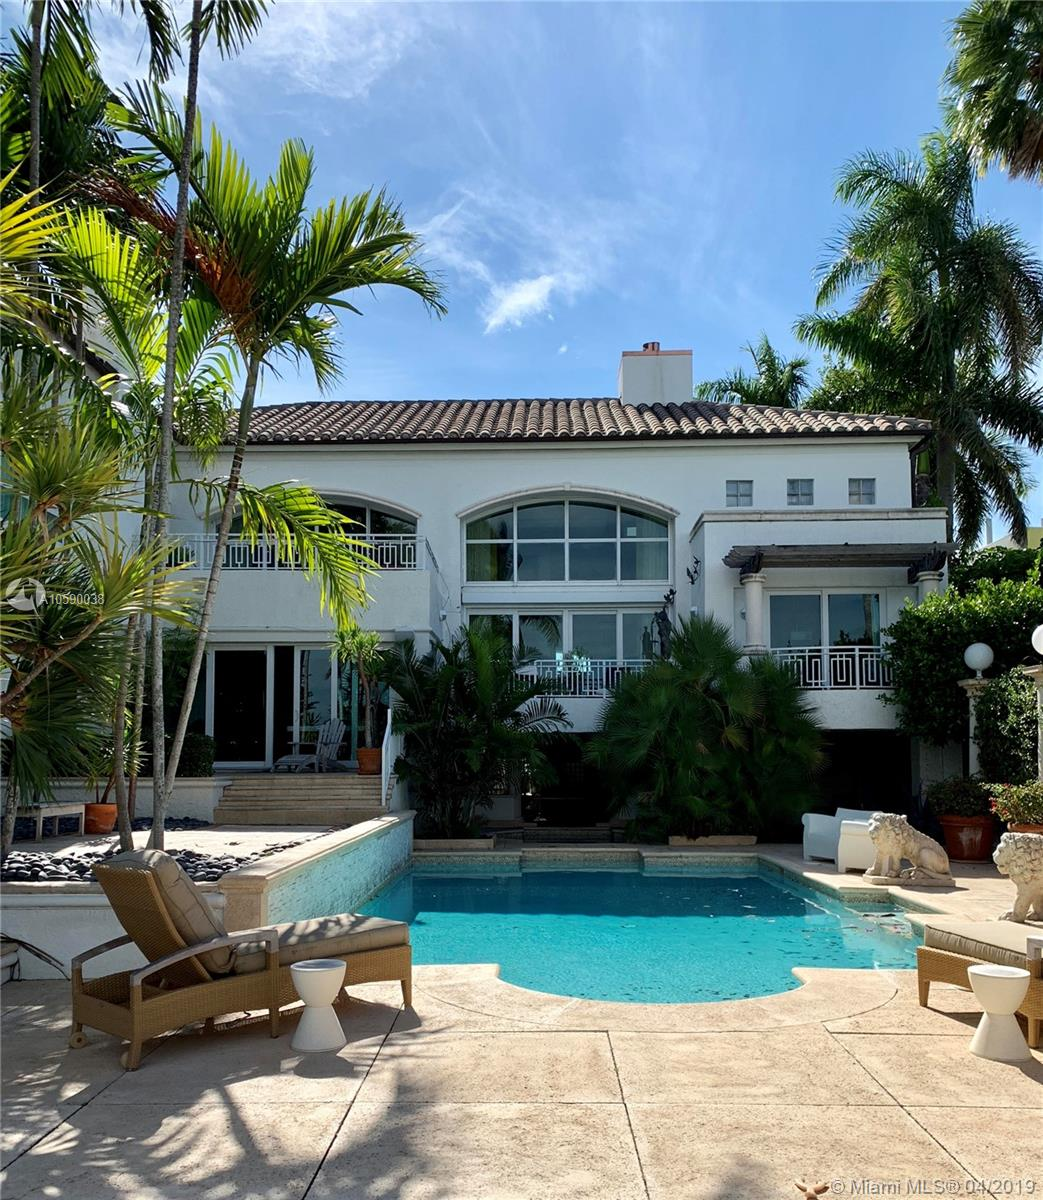 Rent House In Miami Beach: Palm Island Real Estate - Royal Realtors